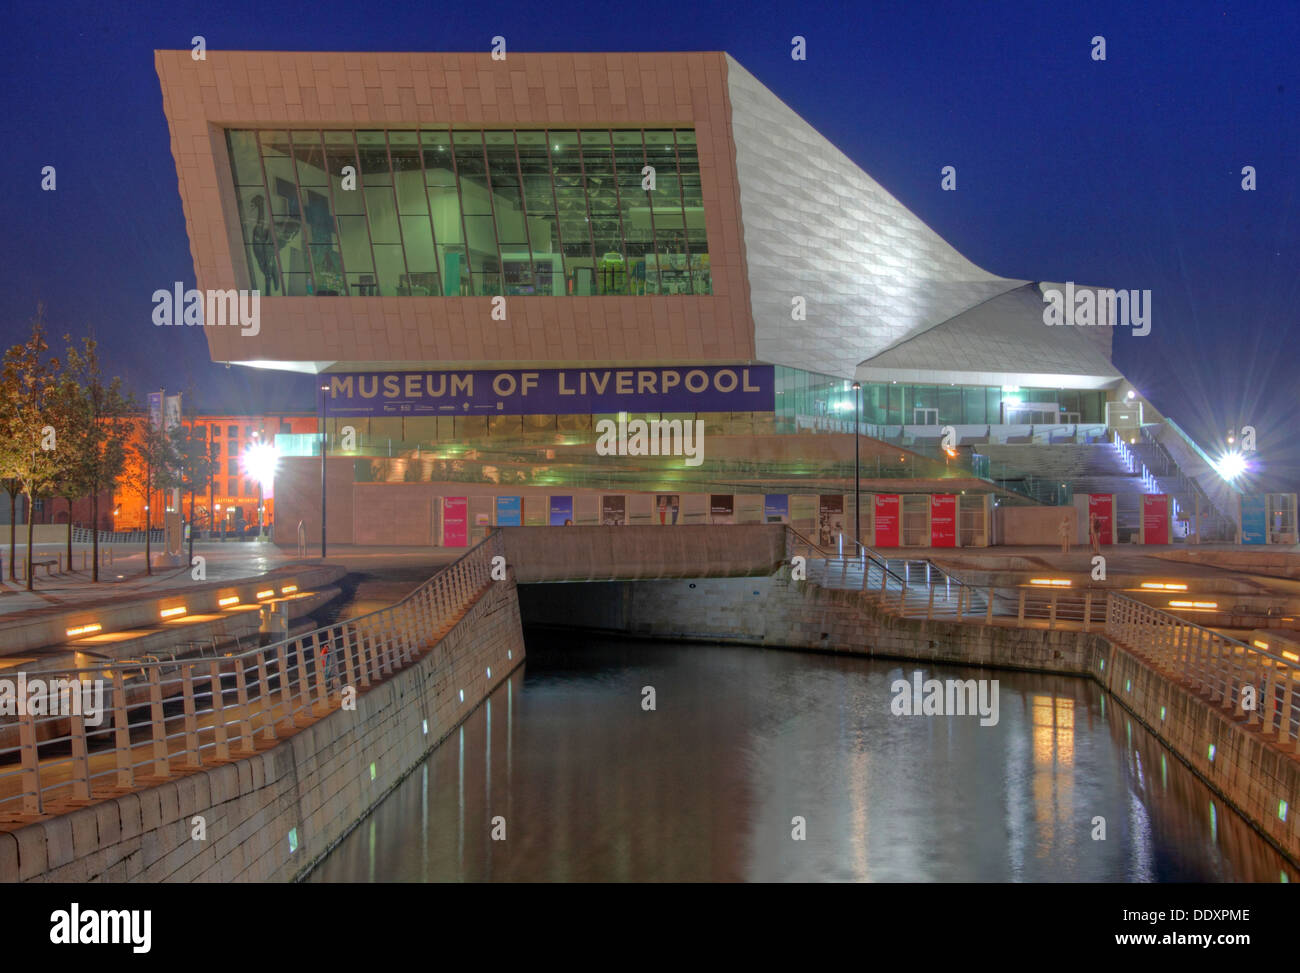 night,shot,nightshot,nighttime,evening,architecture,building,canal,dusk,head,landmark,link,lit,Liverpool,museum,night,pier,reflected,reflection,uk,up,waterfront,city,centre,Museum,of,lighted,open,winter,scouse,scouser,design,designed,Mann,Island,3XN,Lit up,Mann Island,GoTonySmith,@HotpixUK,museums,Buro,Happold,England,UK,GB,Great,Britain,Buy Pictures of,Buy Images Of,Images of Liverpool,Stock Images,National Museums,National Museums Liverpool,Museum of Liverpool Life,Buro Happold,Great Britain